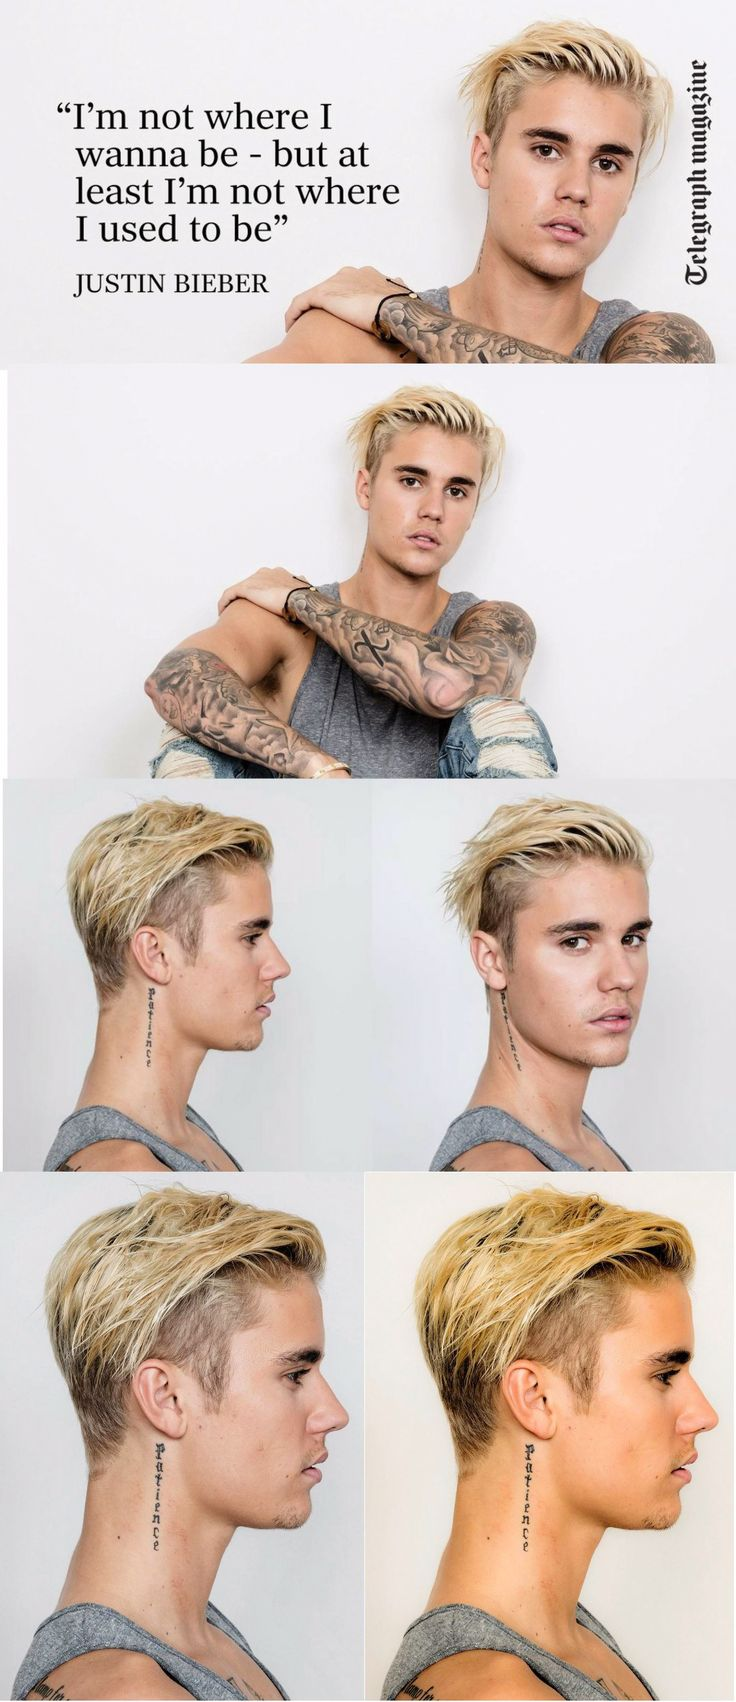 #justinbieber #collections 2015 https://plus.google.com/+smaila242/posts…